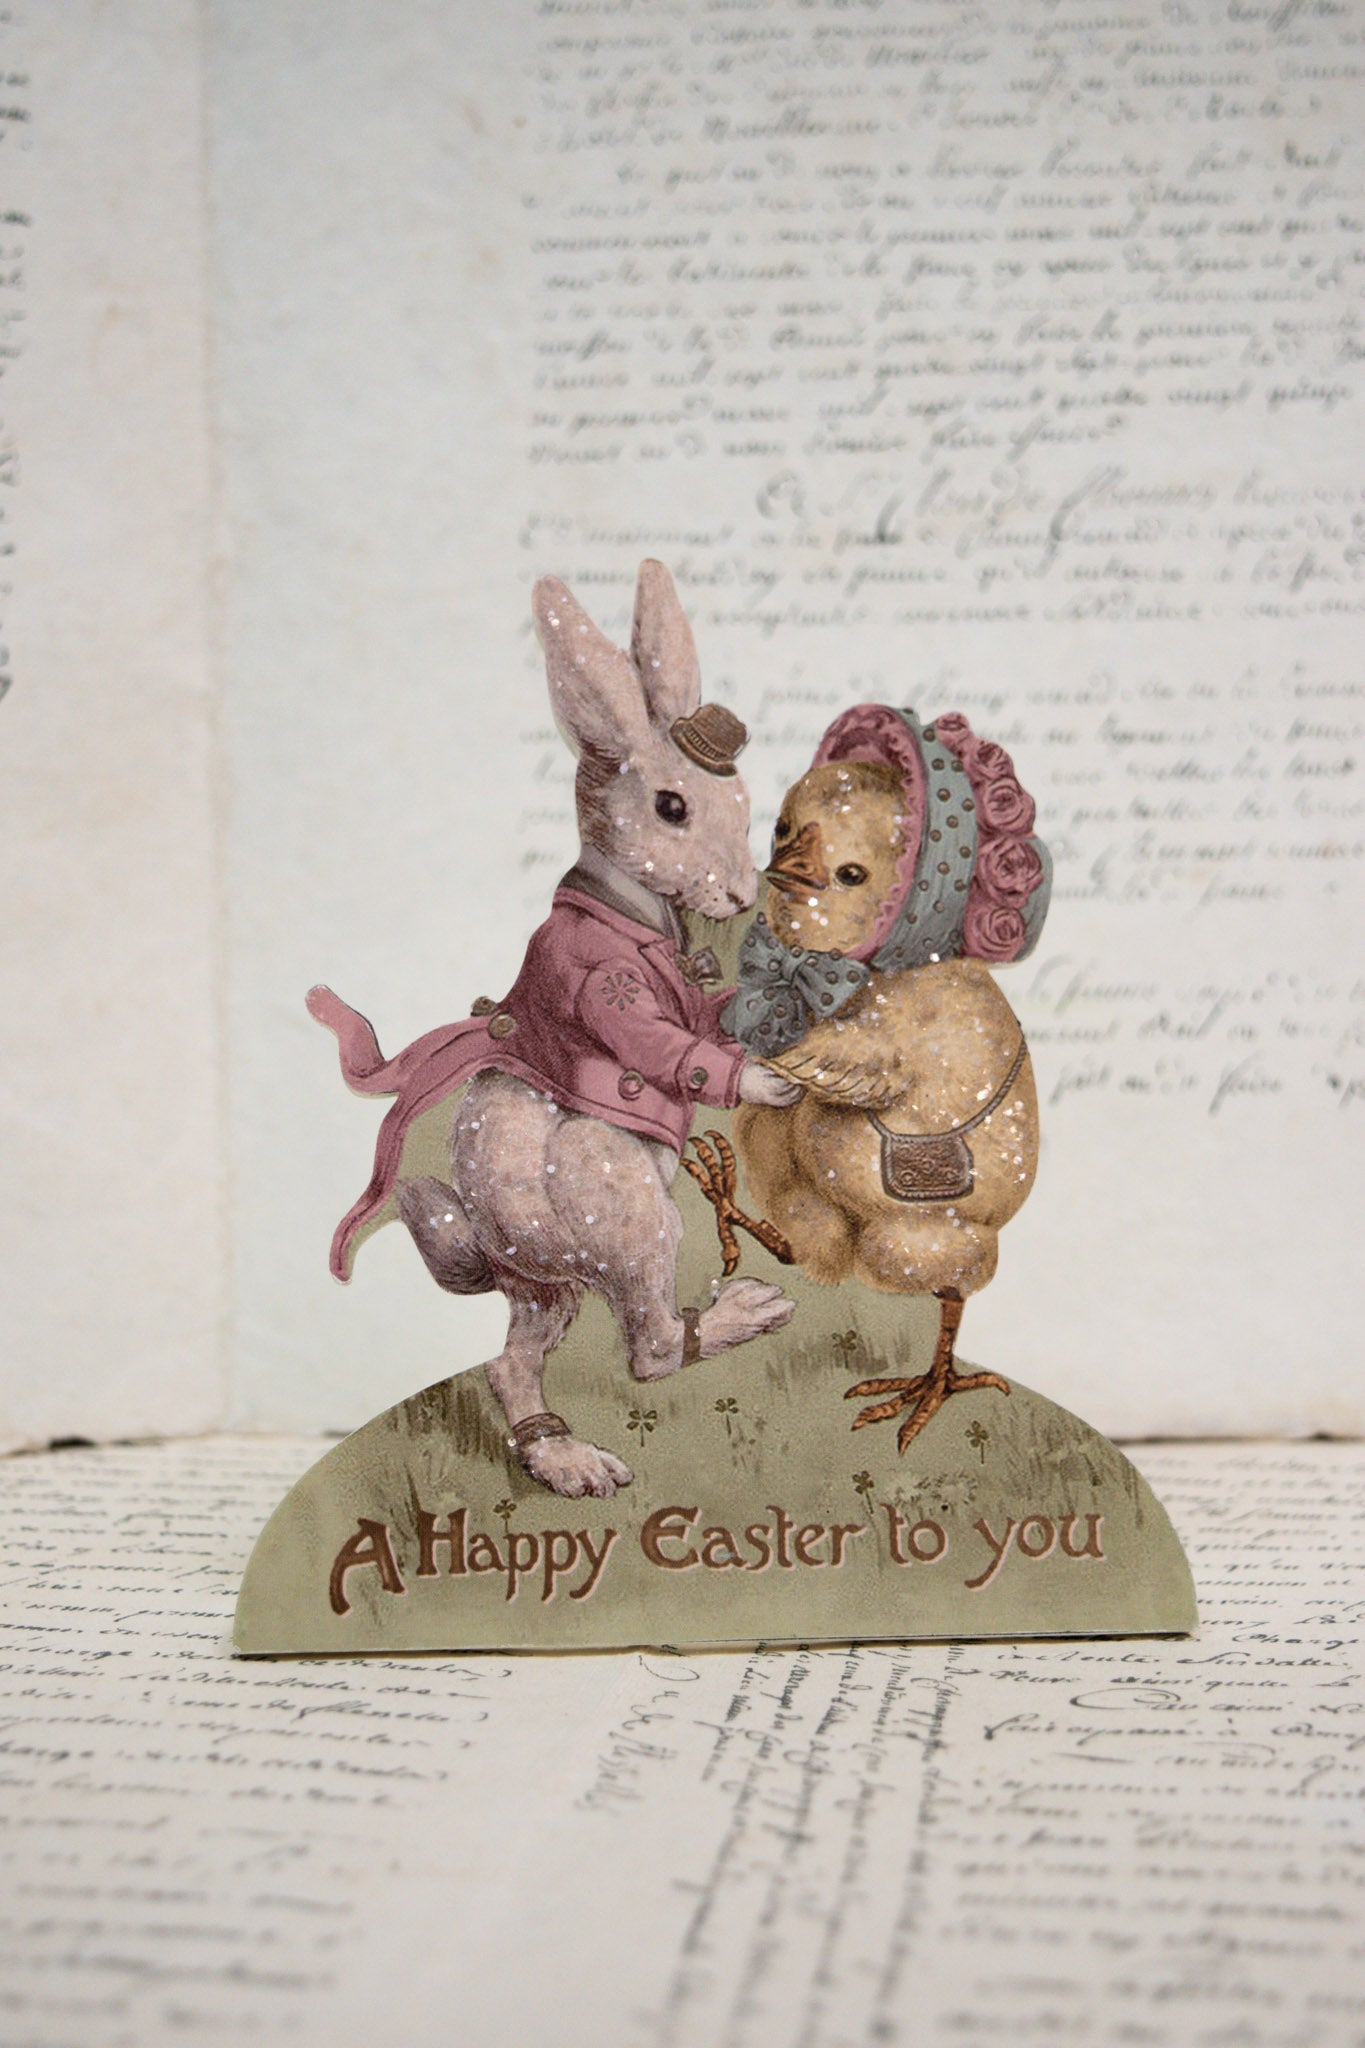 Nostalgic 'Happy Easter to You' Standing Decoration